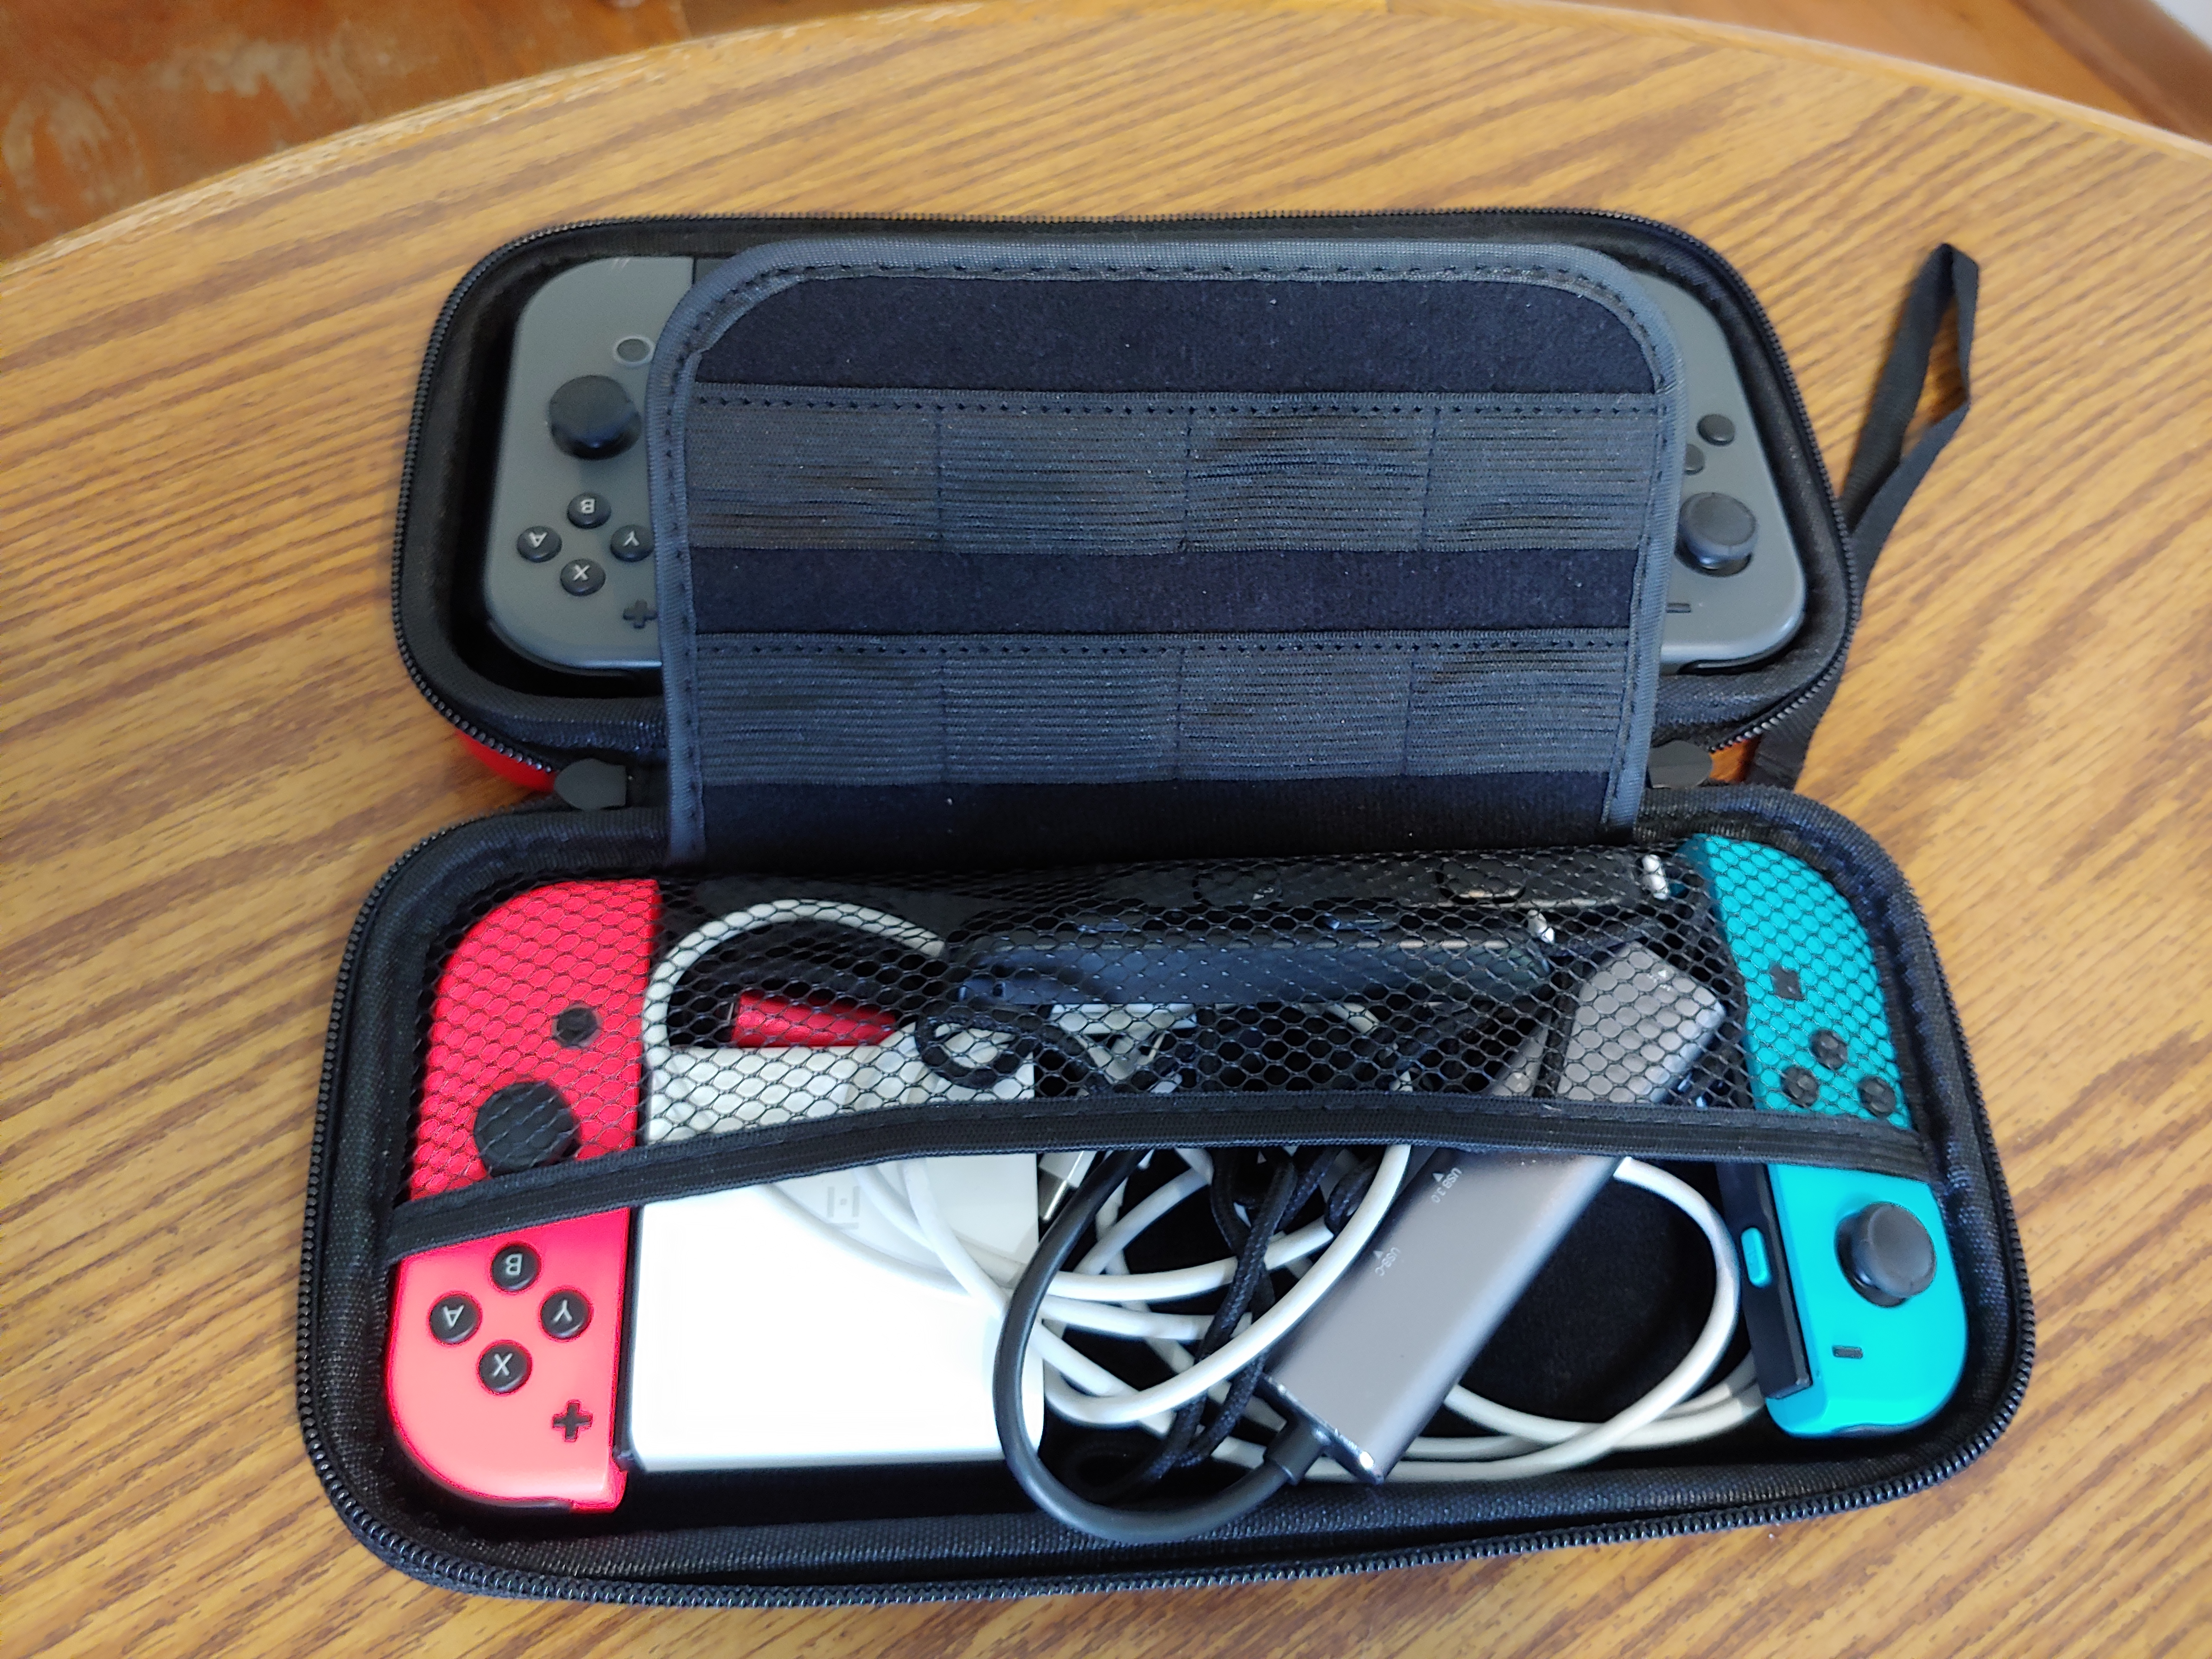 Ematic Protective Carrying Case for Nintendo Switch